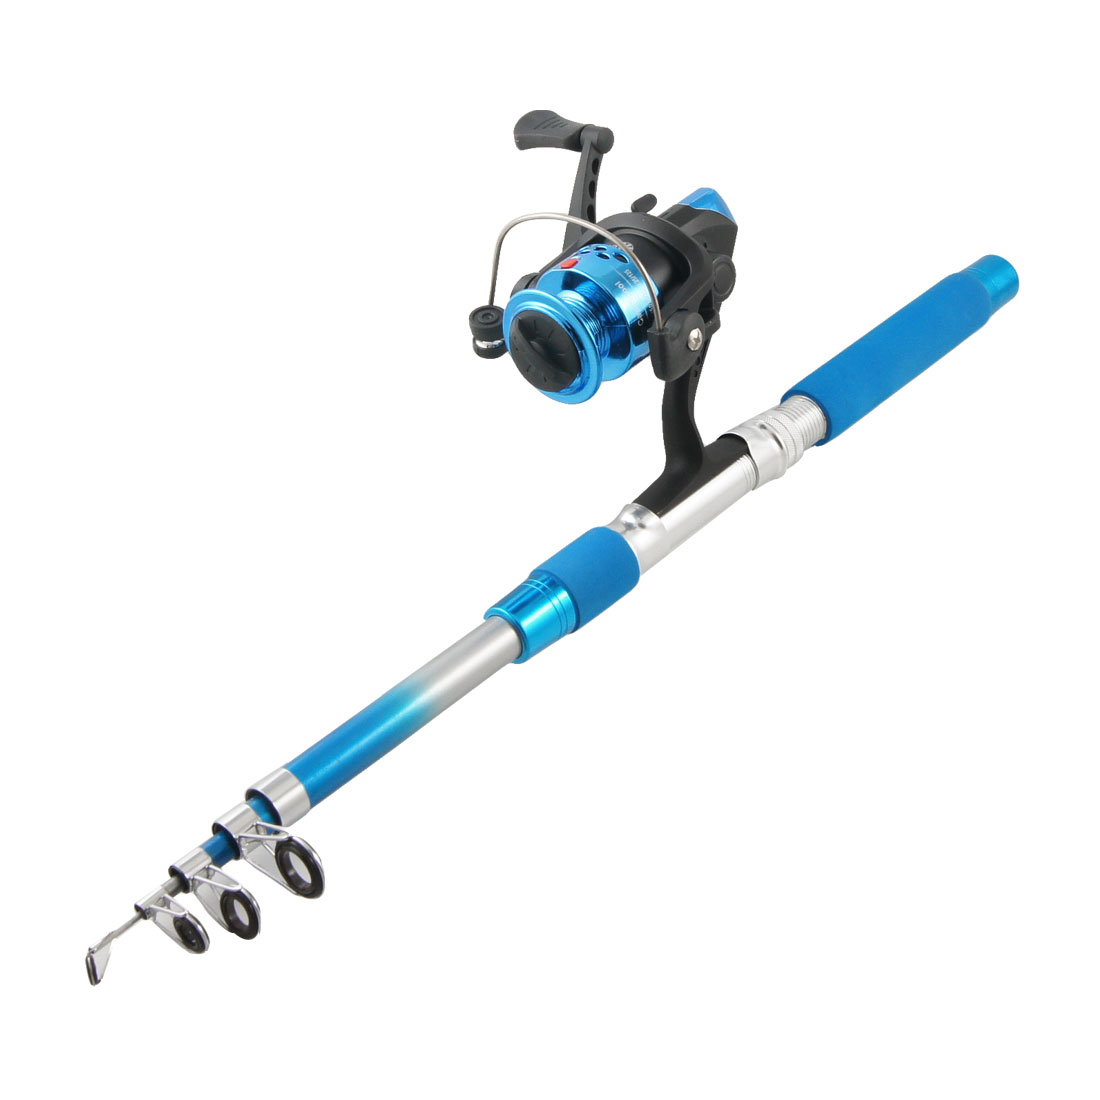 Blue Handle Retractable Fish Rod 1.8M 5.9Ft w Gear Ratio 5.2:1 Spinning Reel